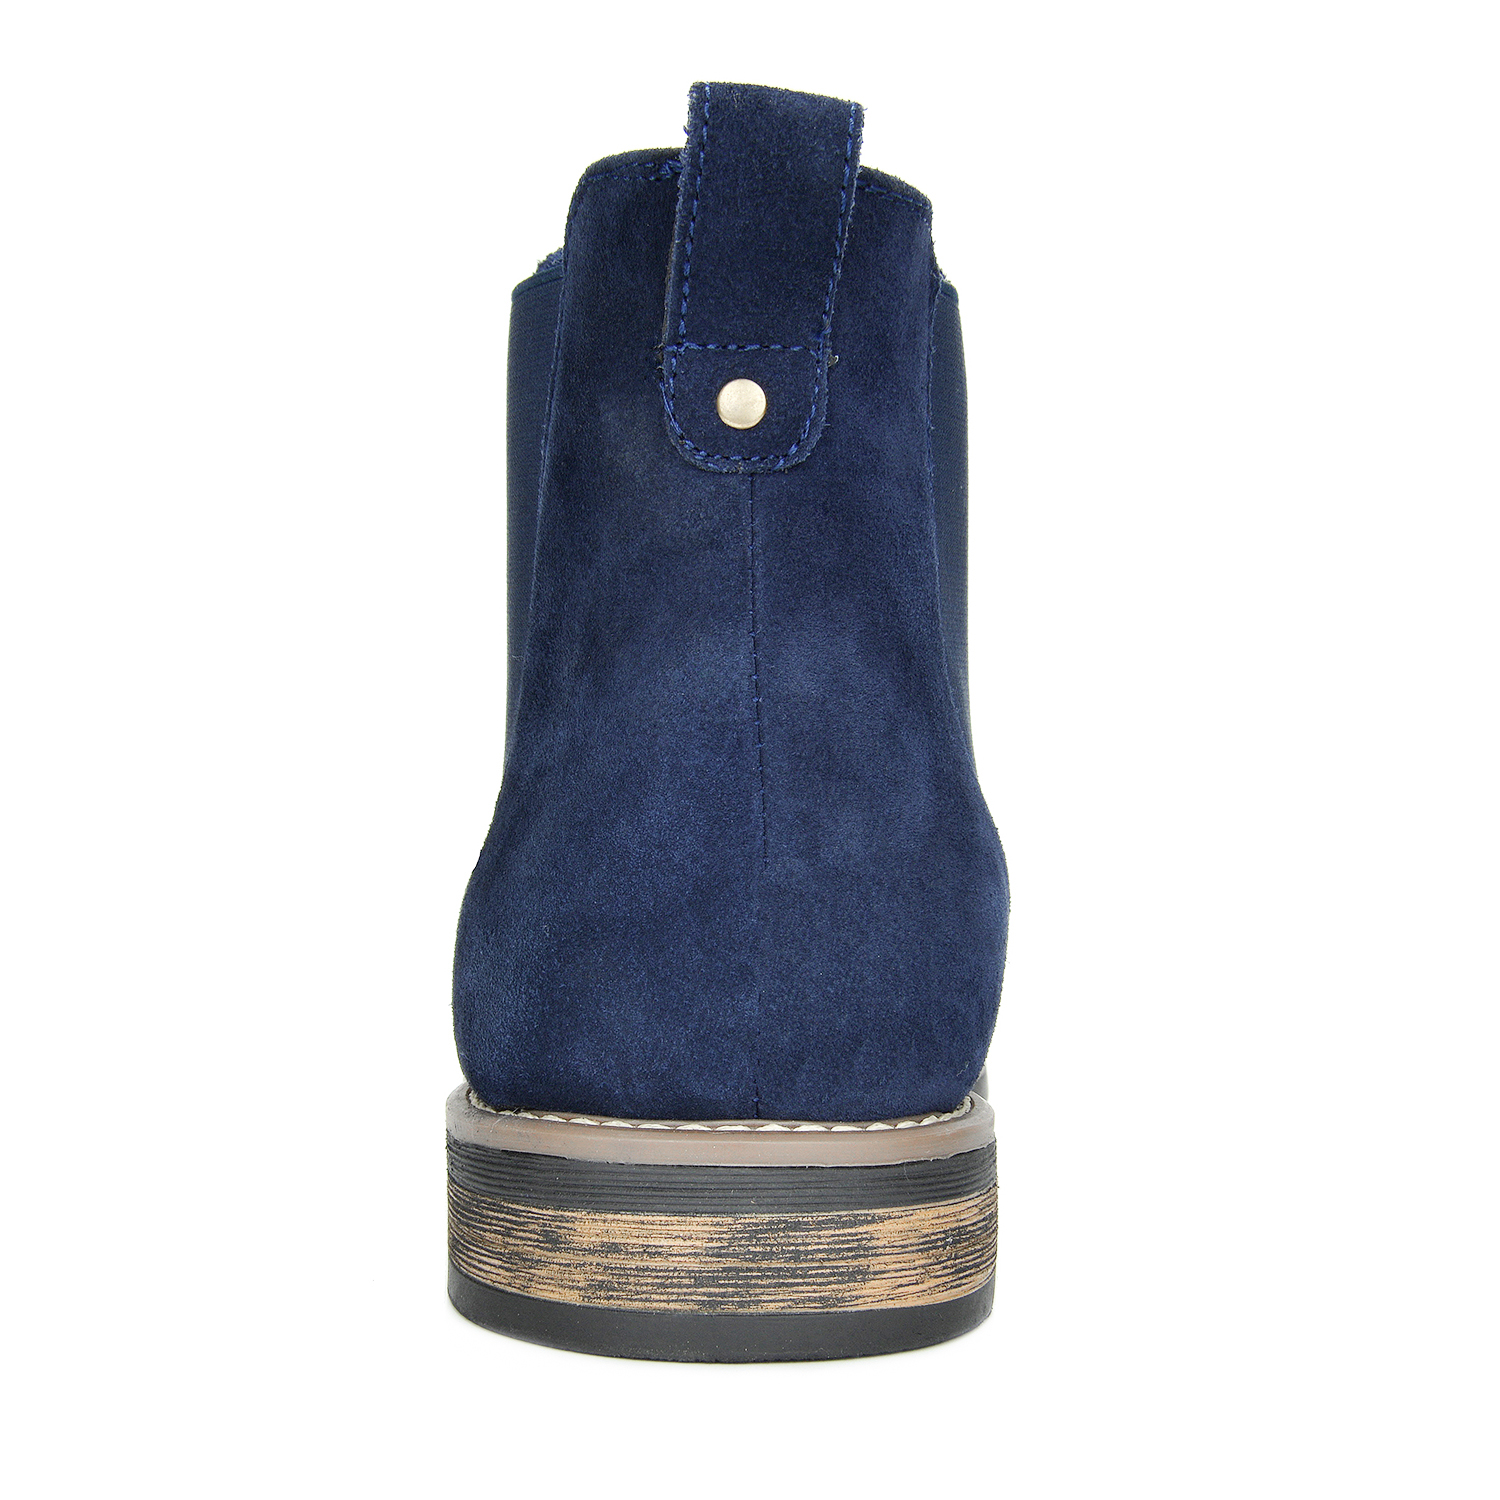 BRUNO-MARC-Men-URBAN-Suede-Leather-Chelsea-Chukka-Dress-Ankle-Boots-Casual-Shoes thumbnail 39